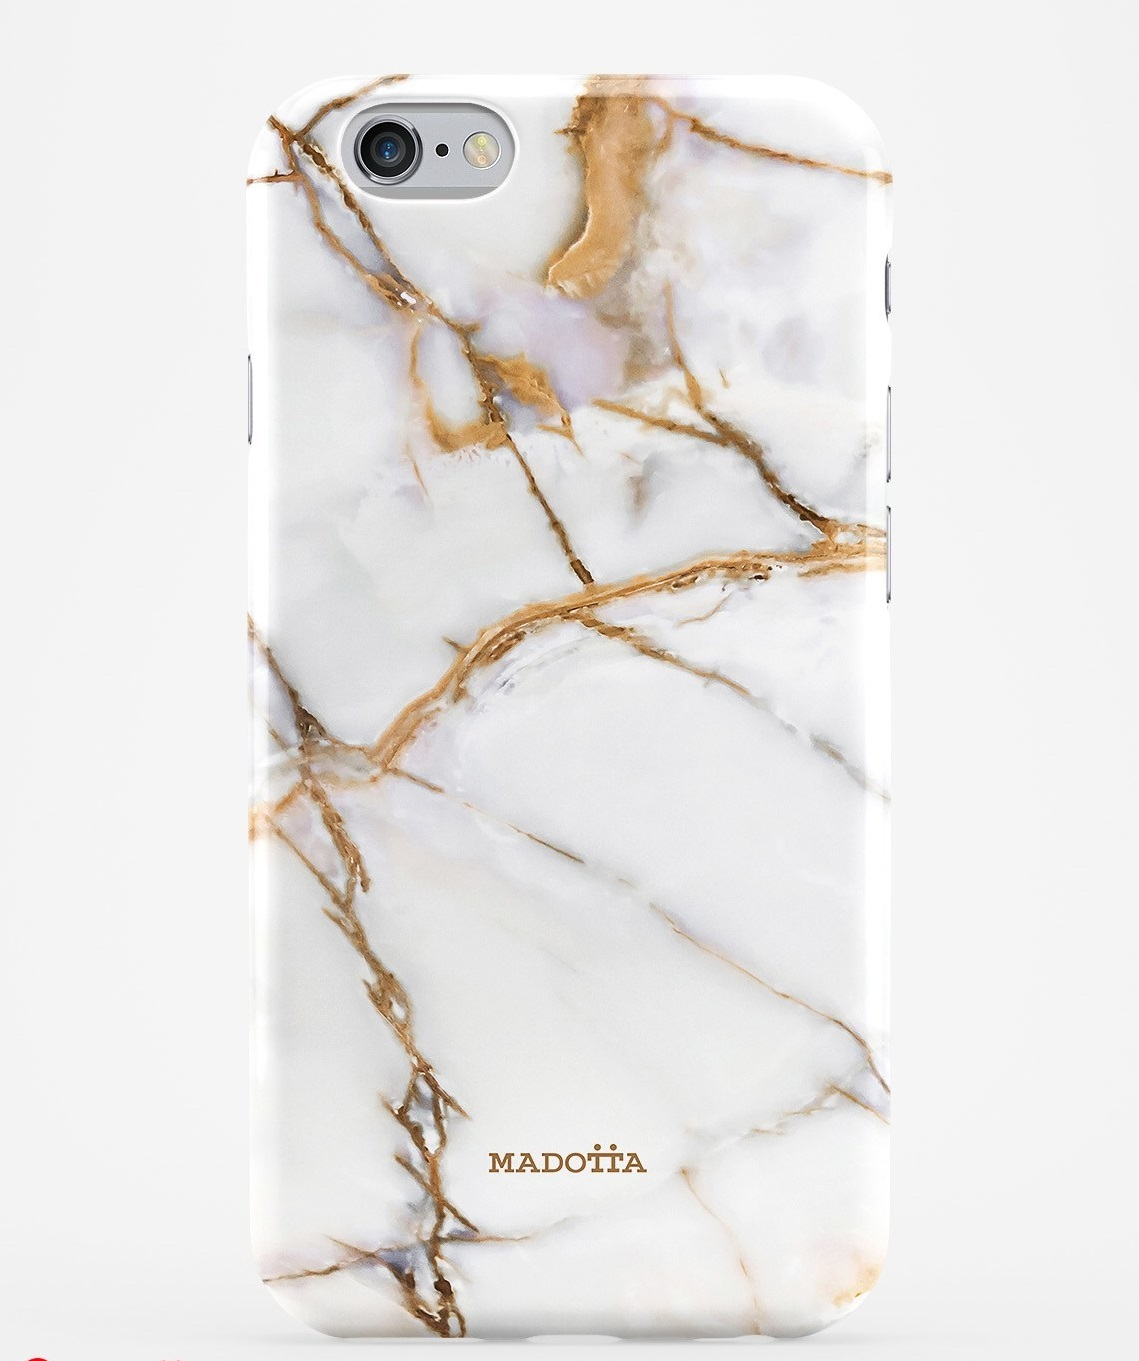 Premium iPhone Cases by Madotta